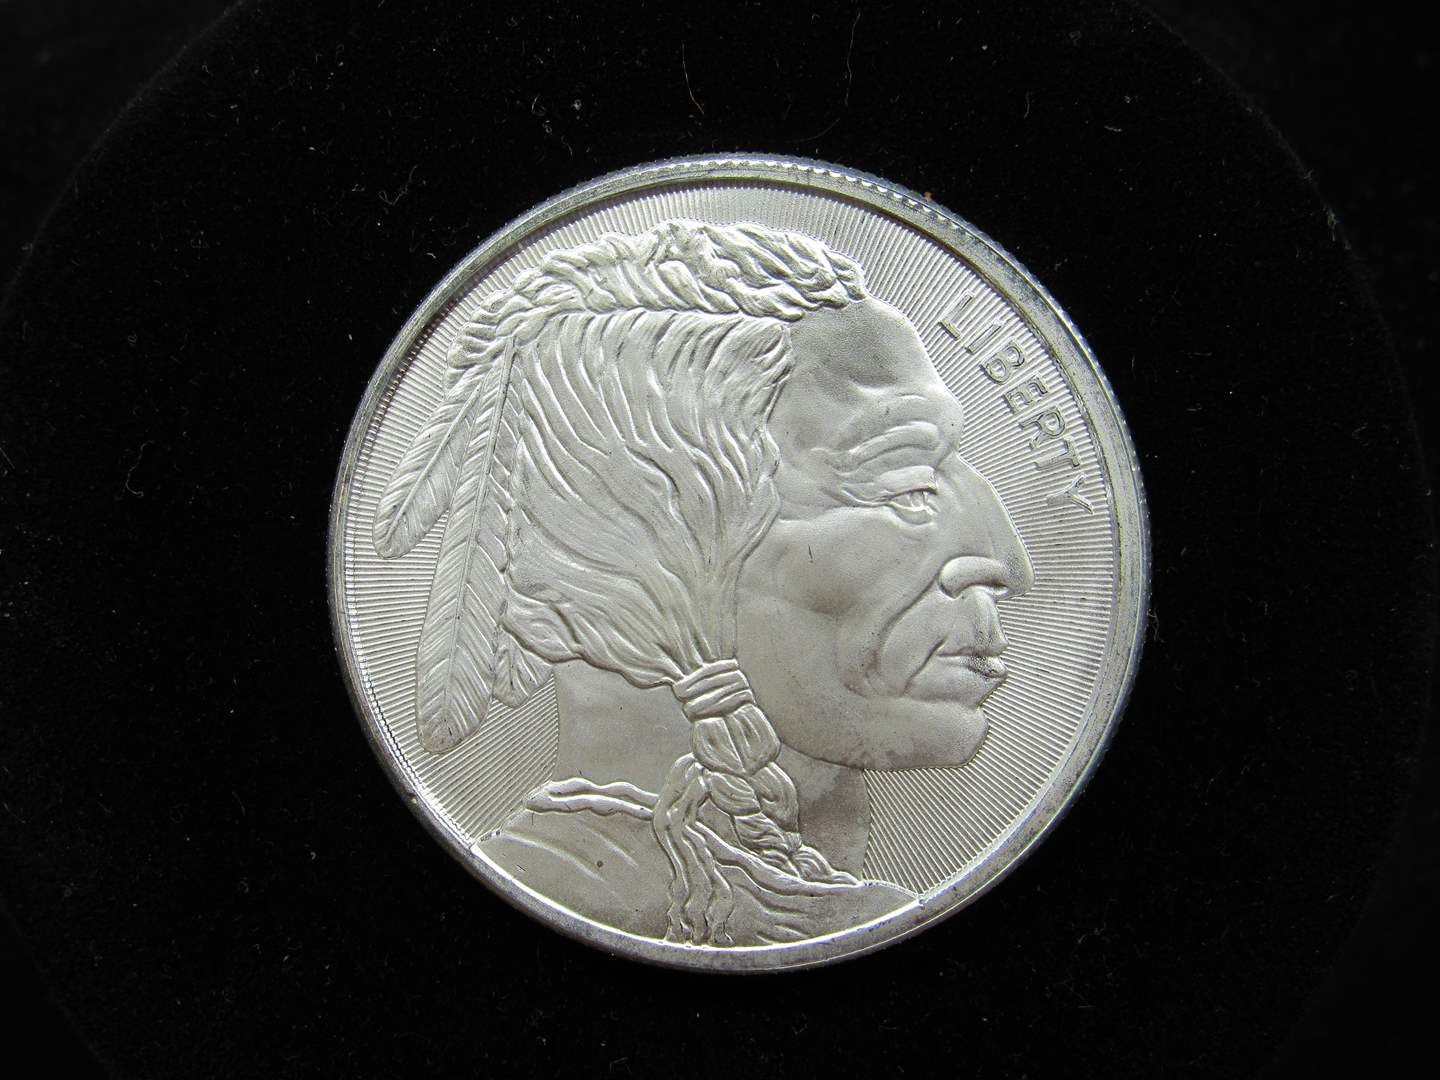 Lot # 126  Indian & Buffalo one Troy Ounce silver round .999 BU condition (main image)